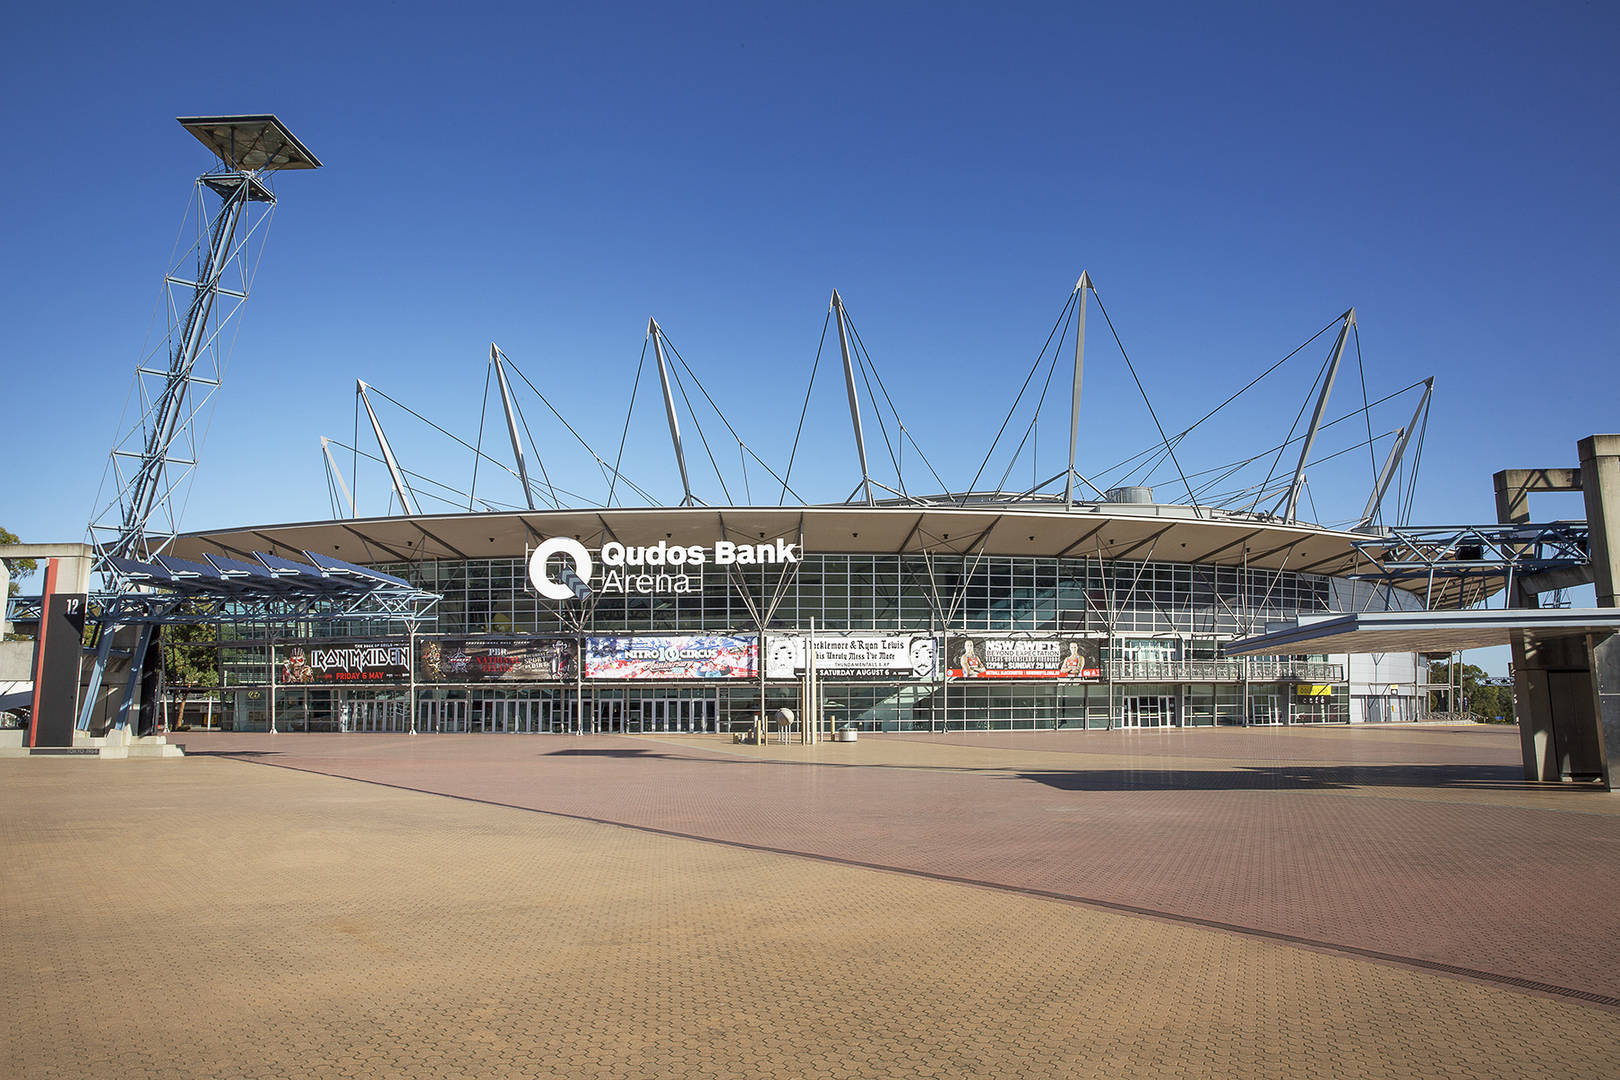 Sydney Olympic Park - Qudos Bank Arena - Photography by Paolo Busato